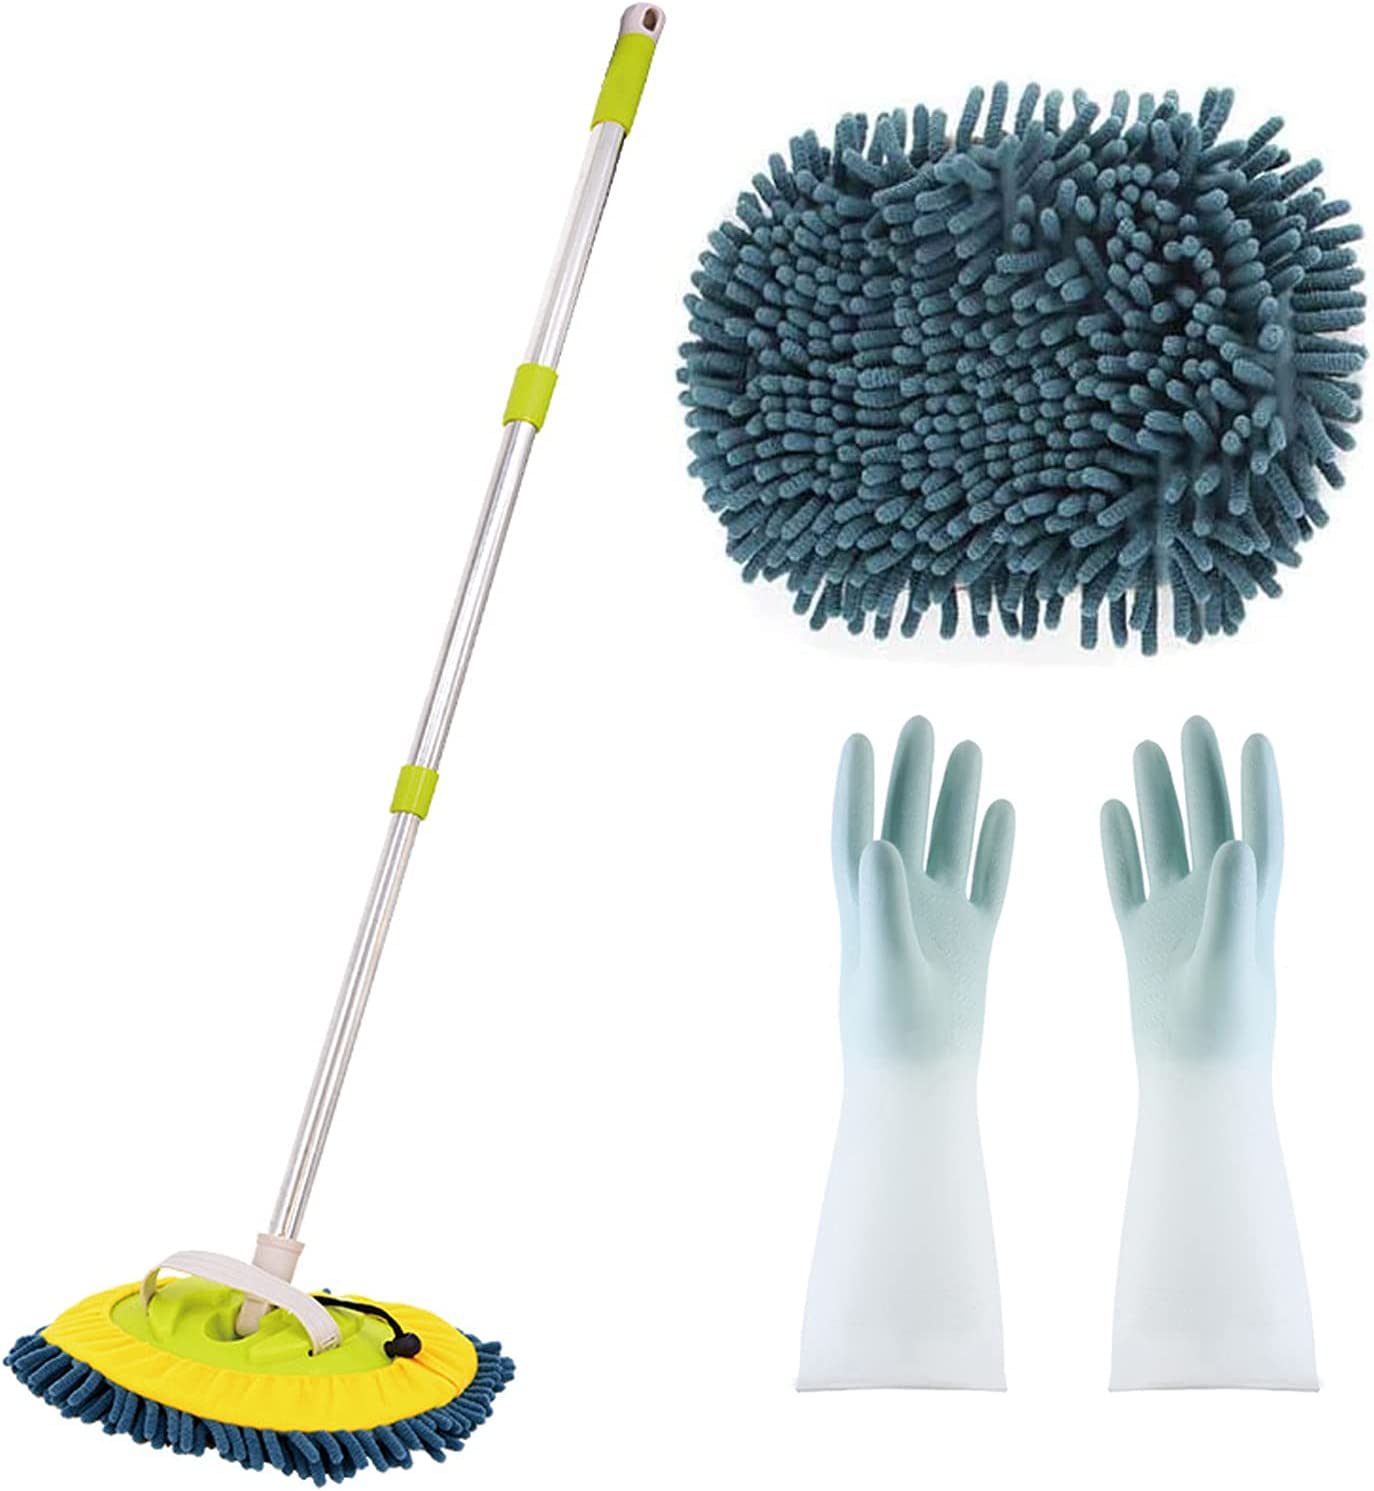 TYJH 3-in-1 Wash Mop Mitt Rotat Limited Special Price Max 60% OFF Retractable Rotation 180 Degree